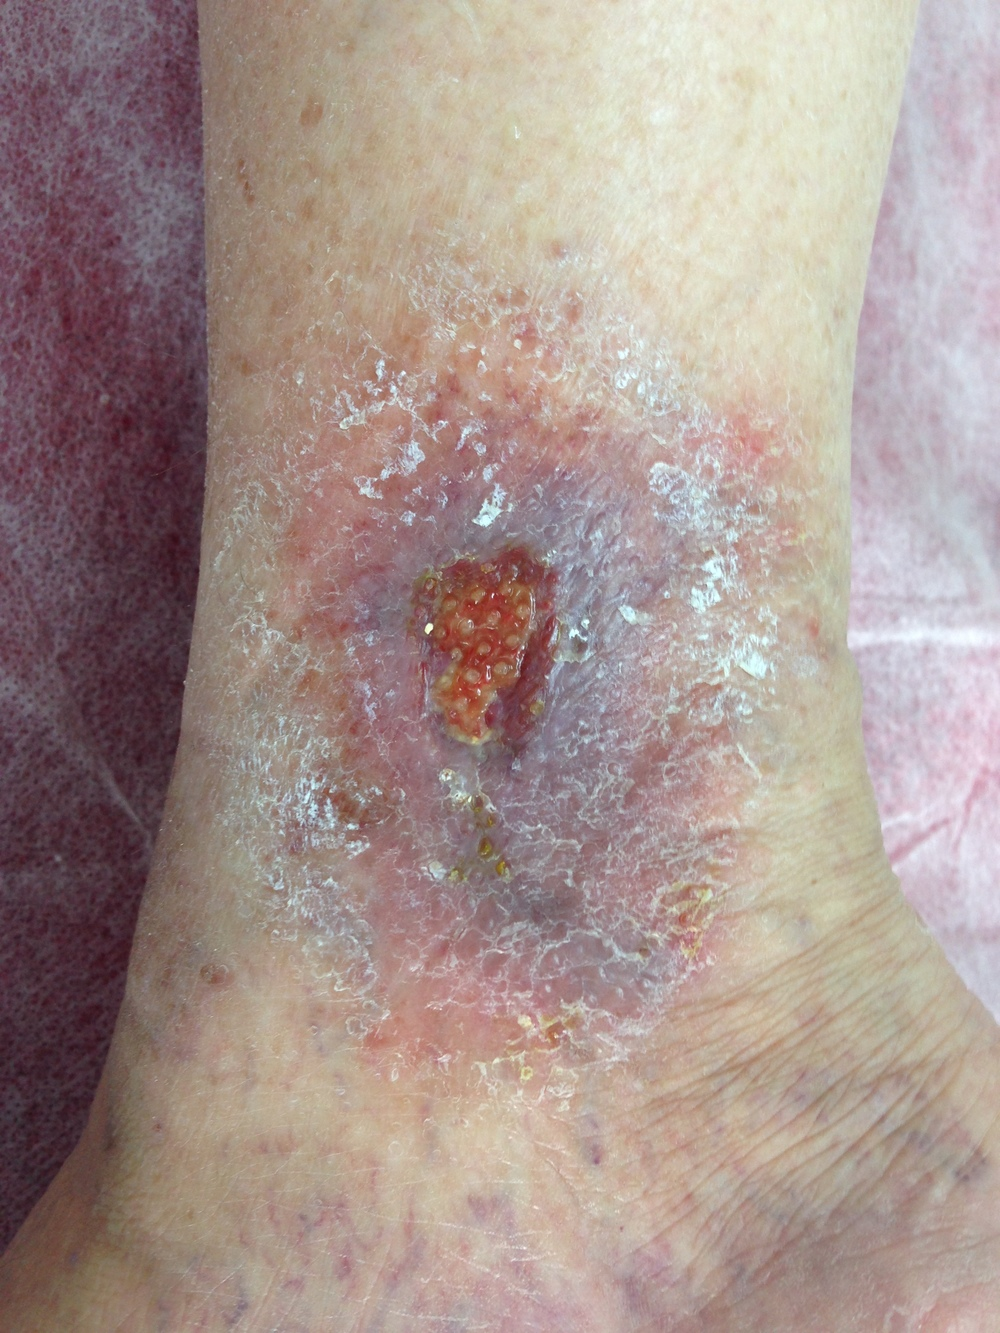 Venous Ulcer - Brisbane